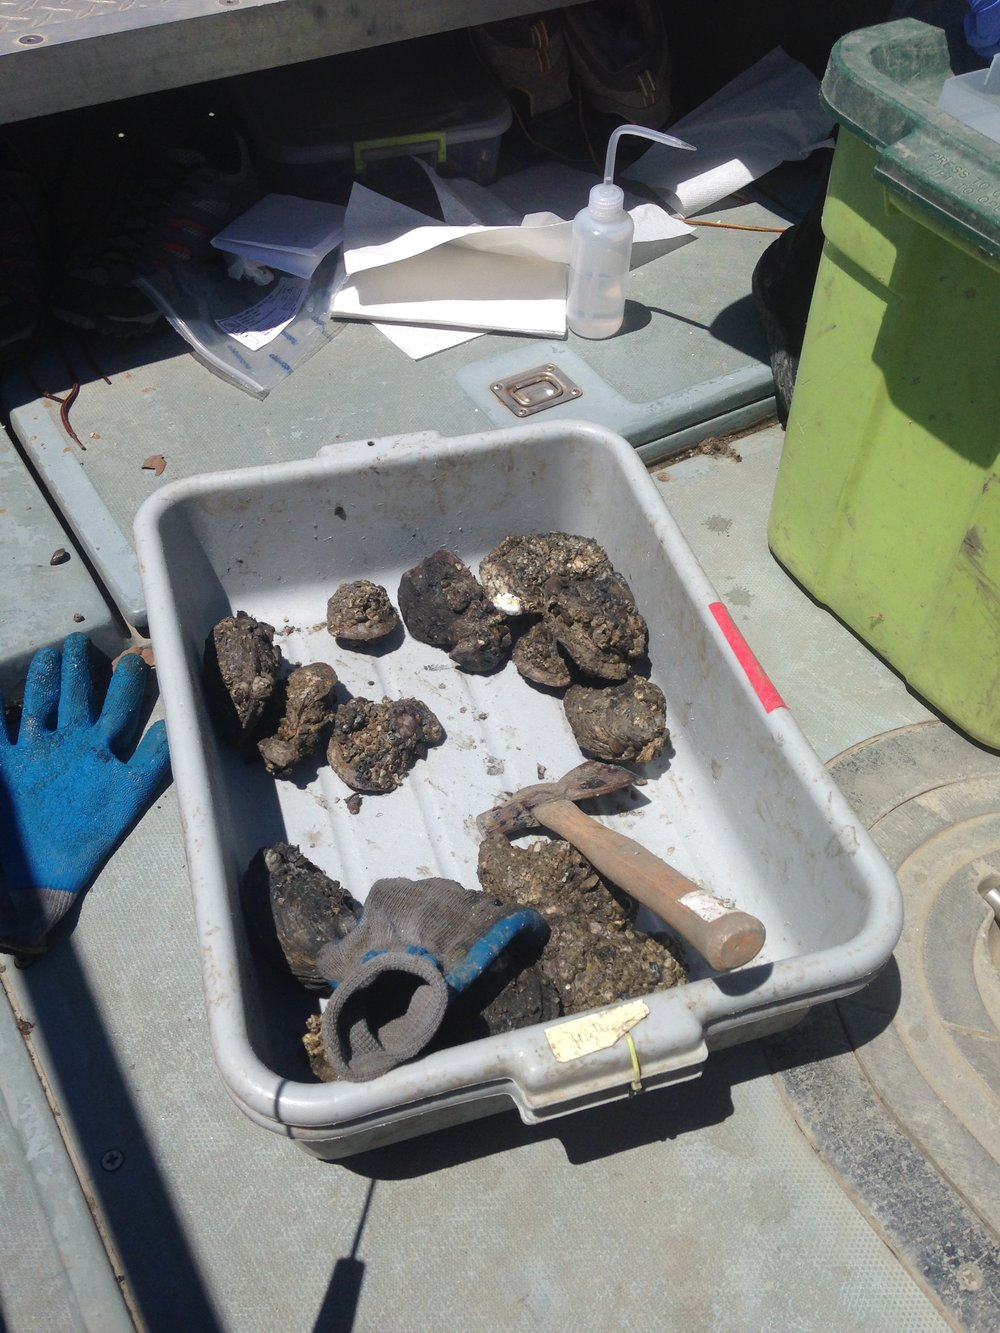 Image of oysters collected in the field. Credit: Hollis Jones.